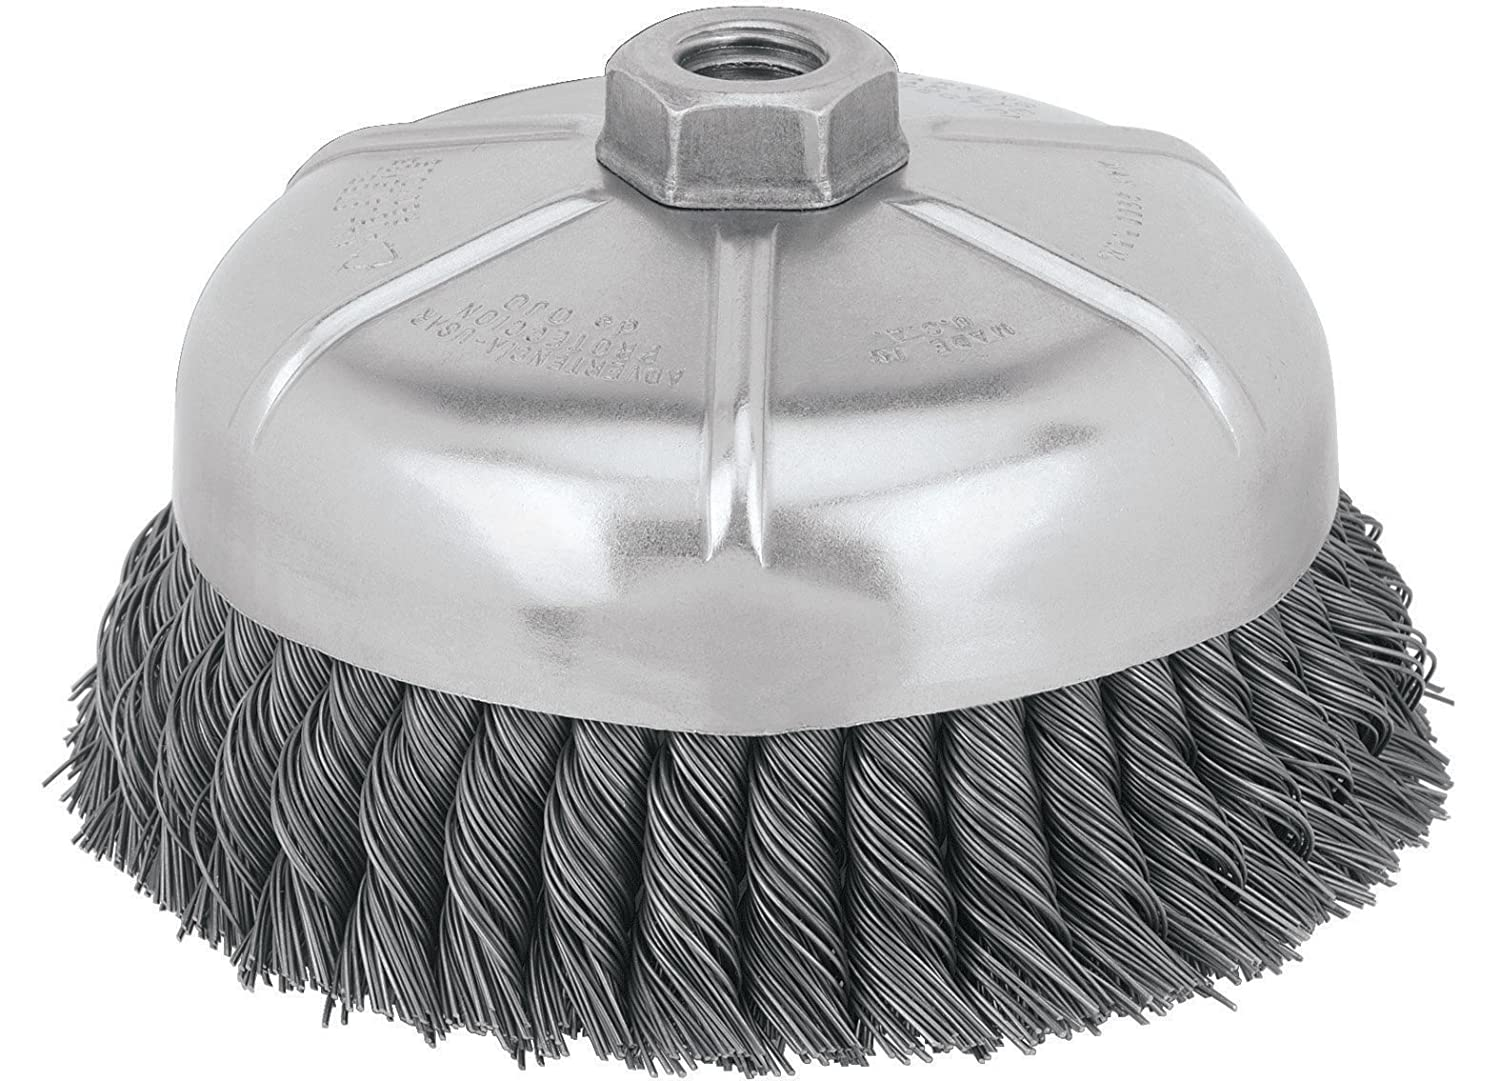 Amazon.com: DEWALT DW4917 6-Inch Knotted Cup Wire Brush: Home ...